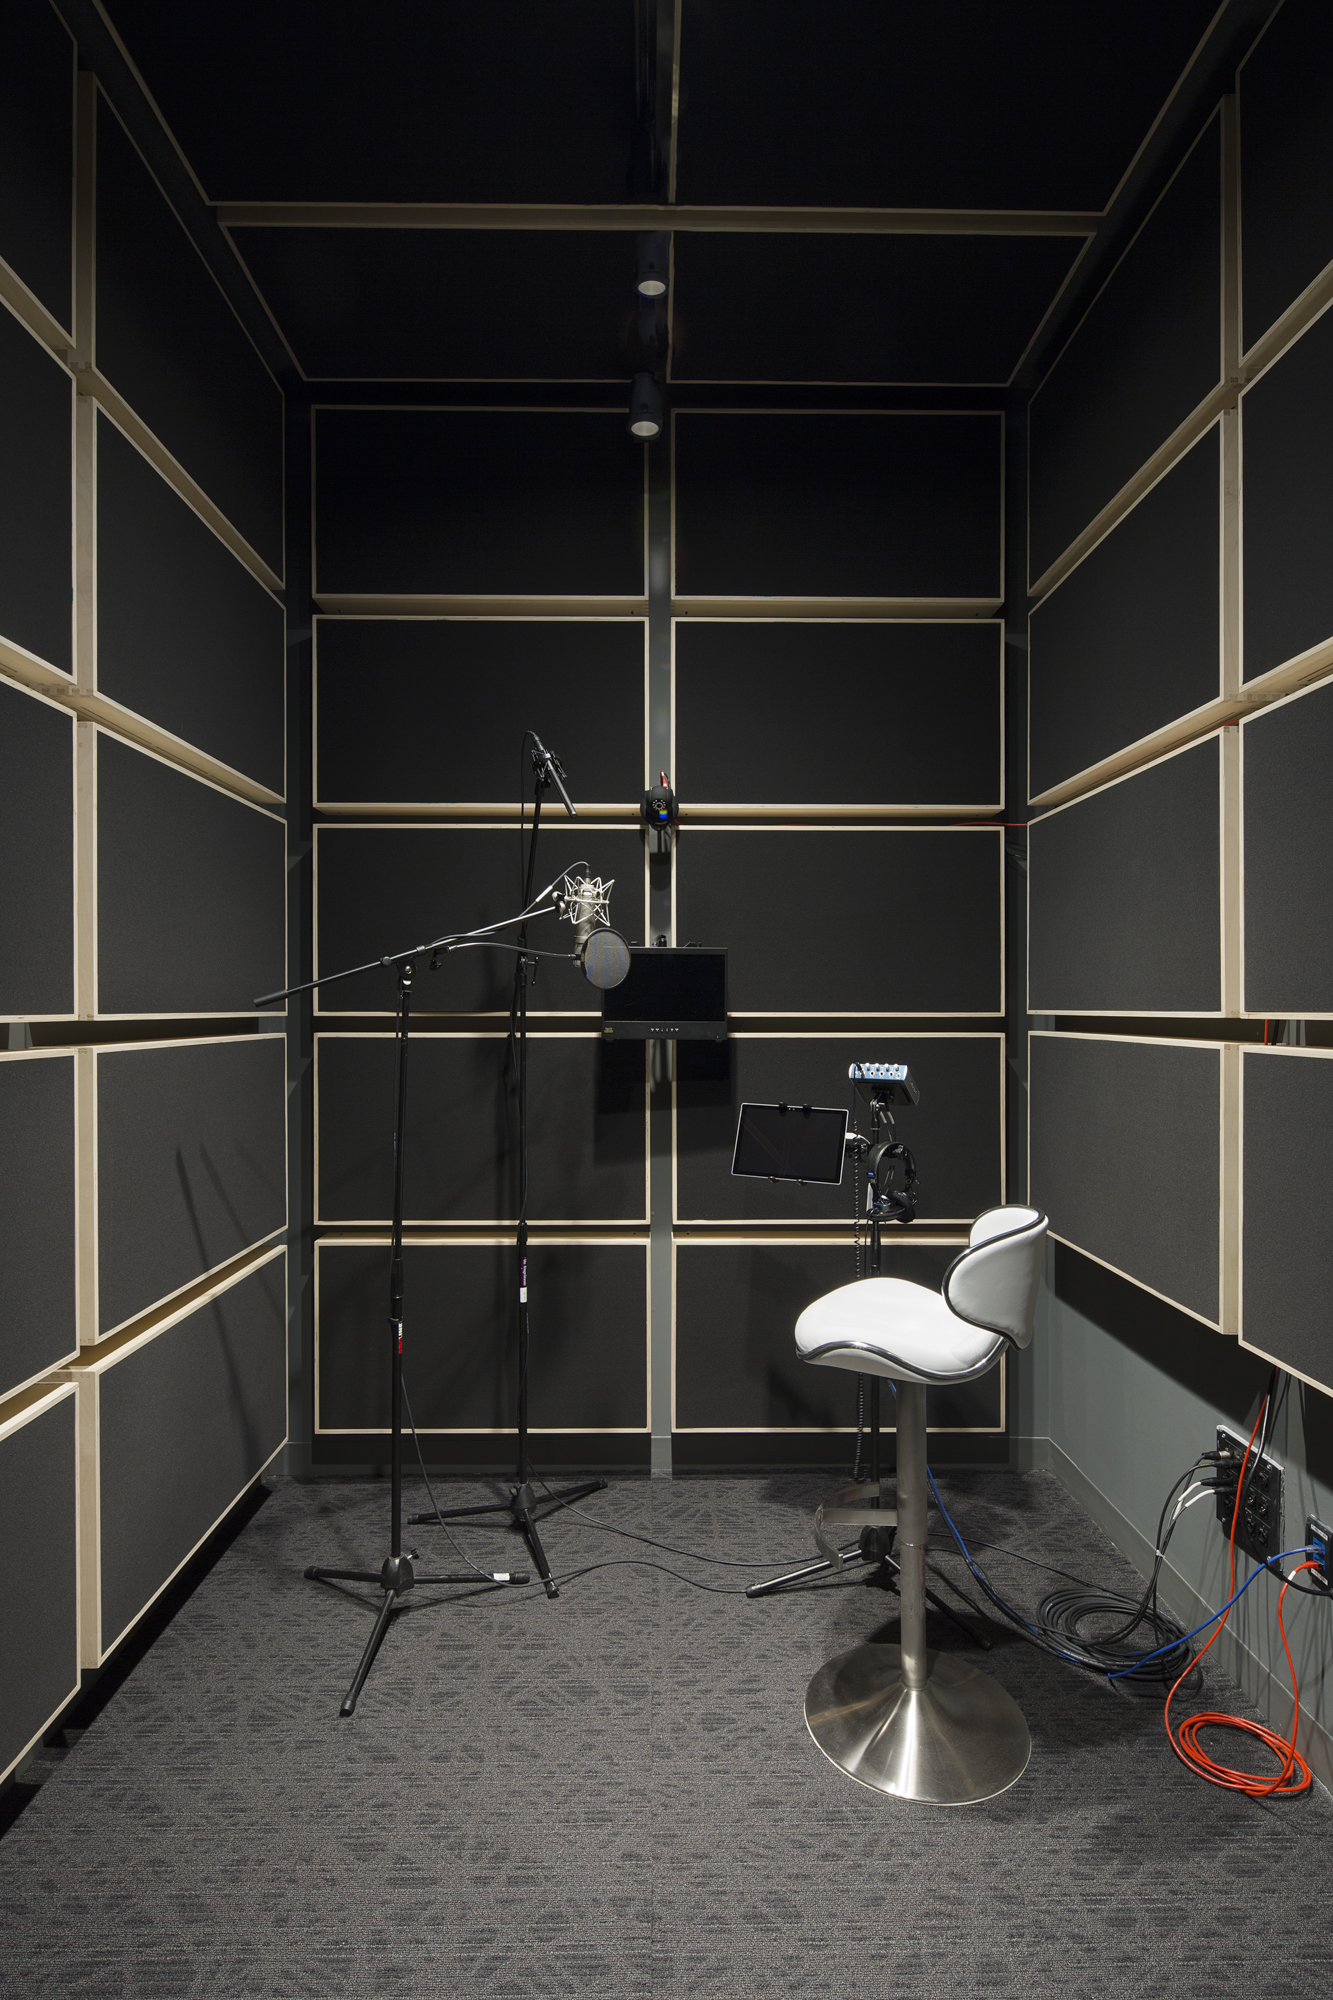 Voice_Over_Room-006-Edit.JPG